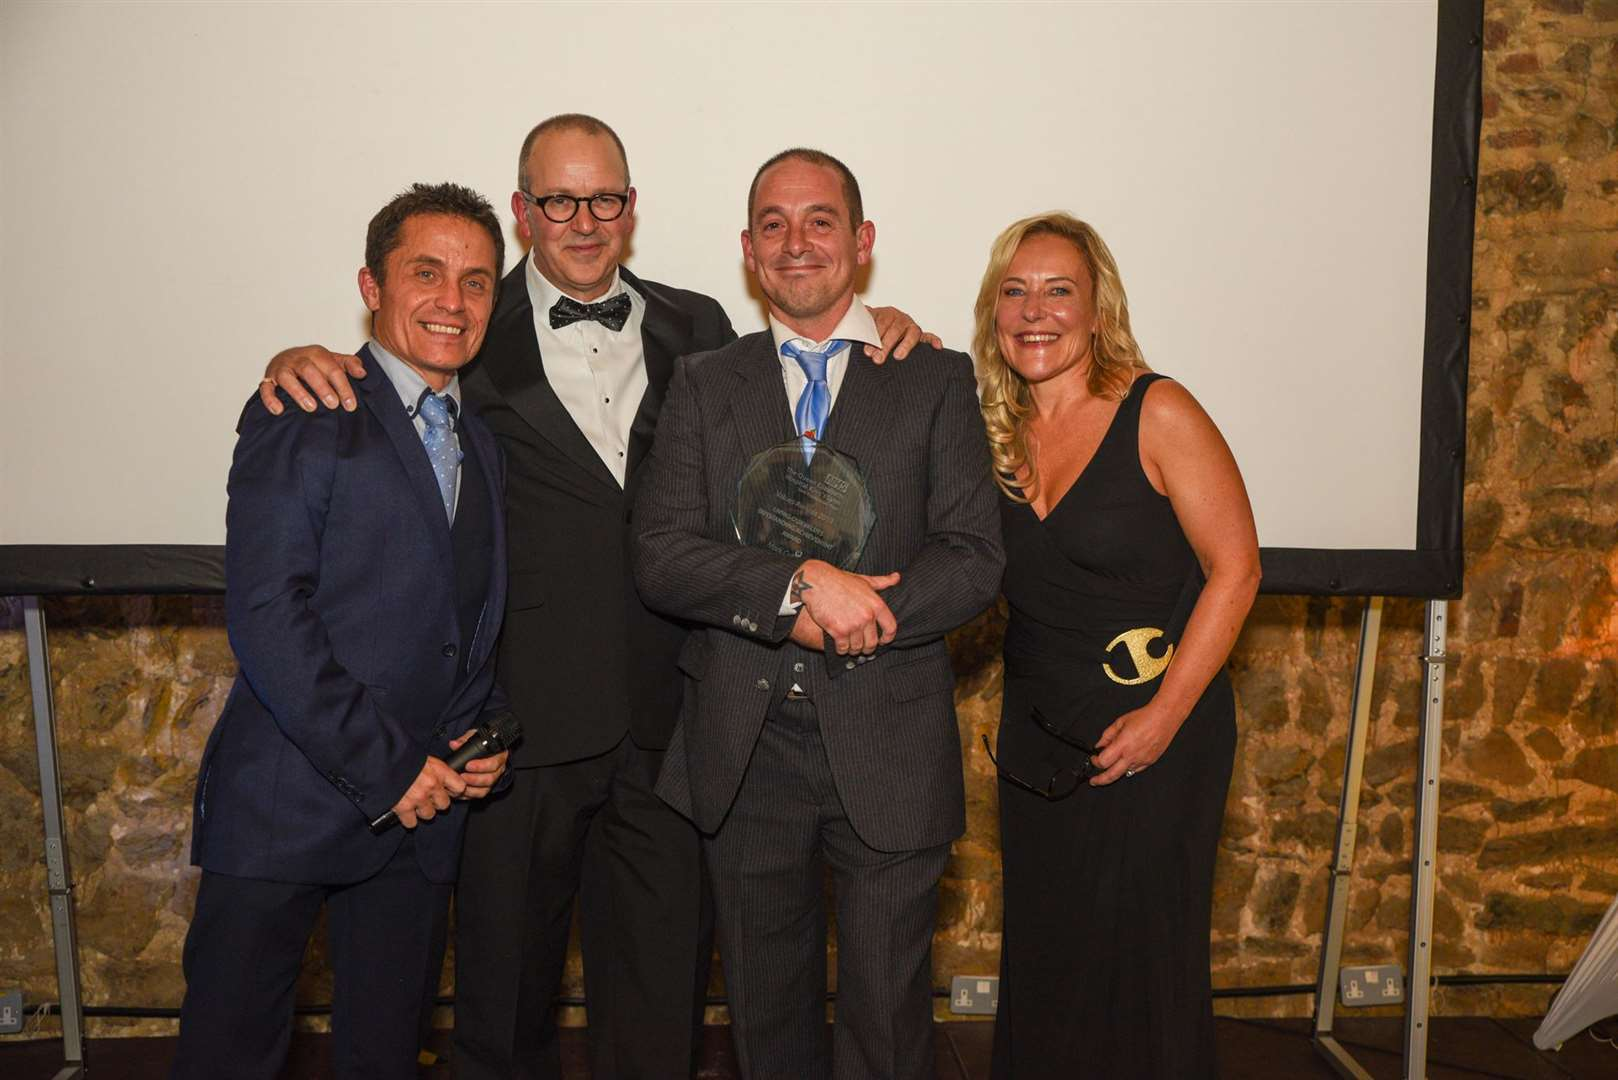 The Living Our Values Outstanding Achievement Award to Mark Collins, pictured second from right(21474942)